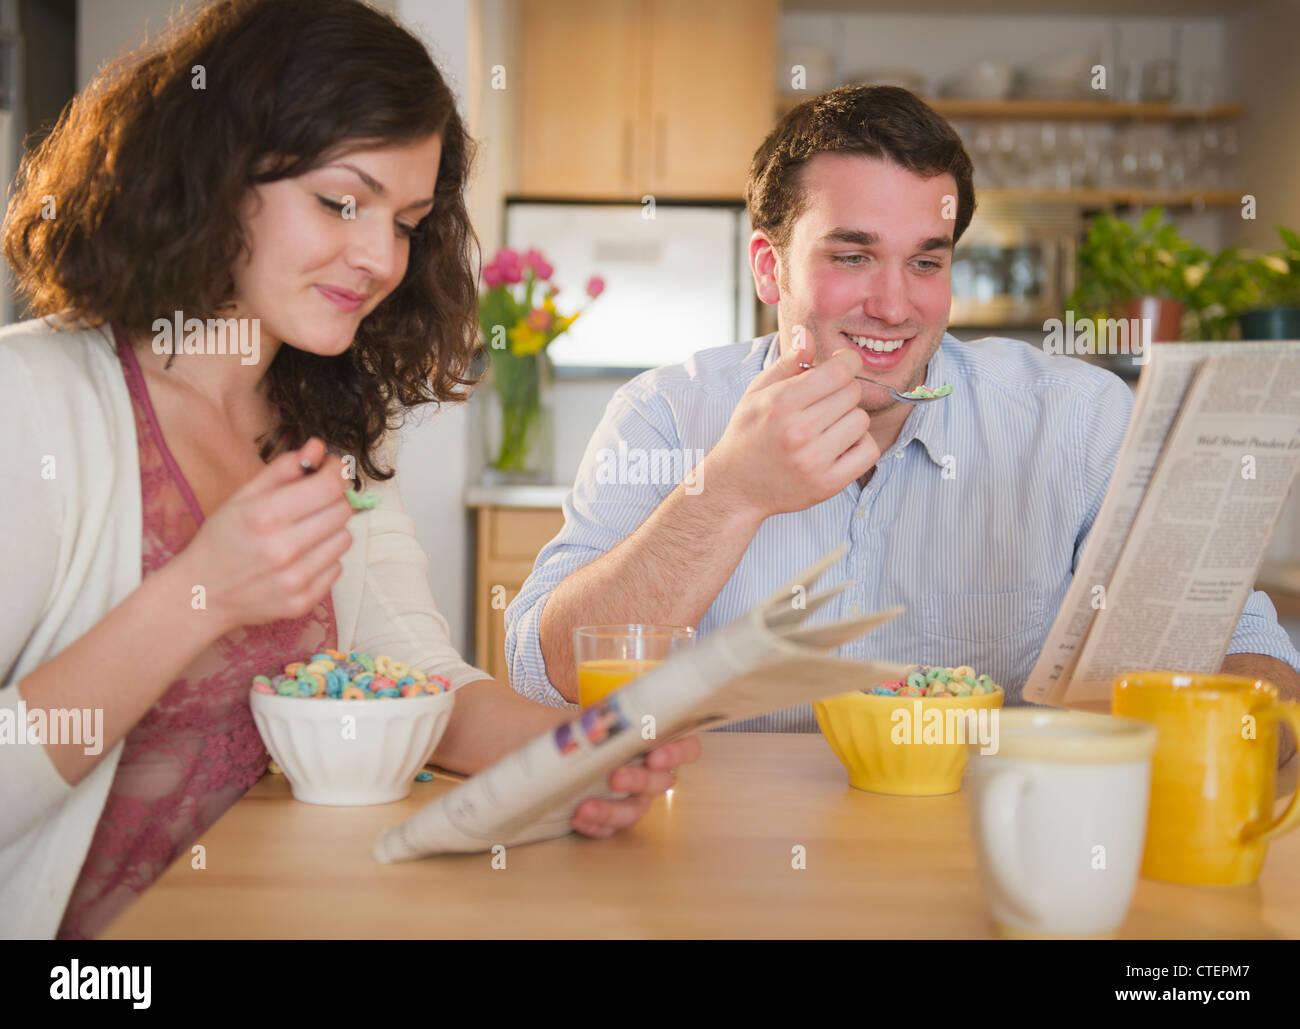 USA, New Jersey, Jersey City, Couple eating breakfast Stock Photo